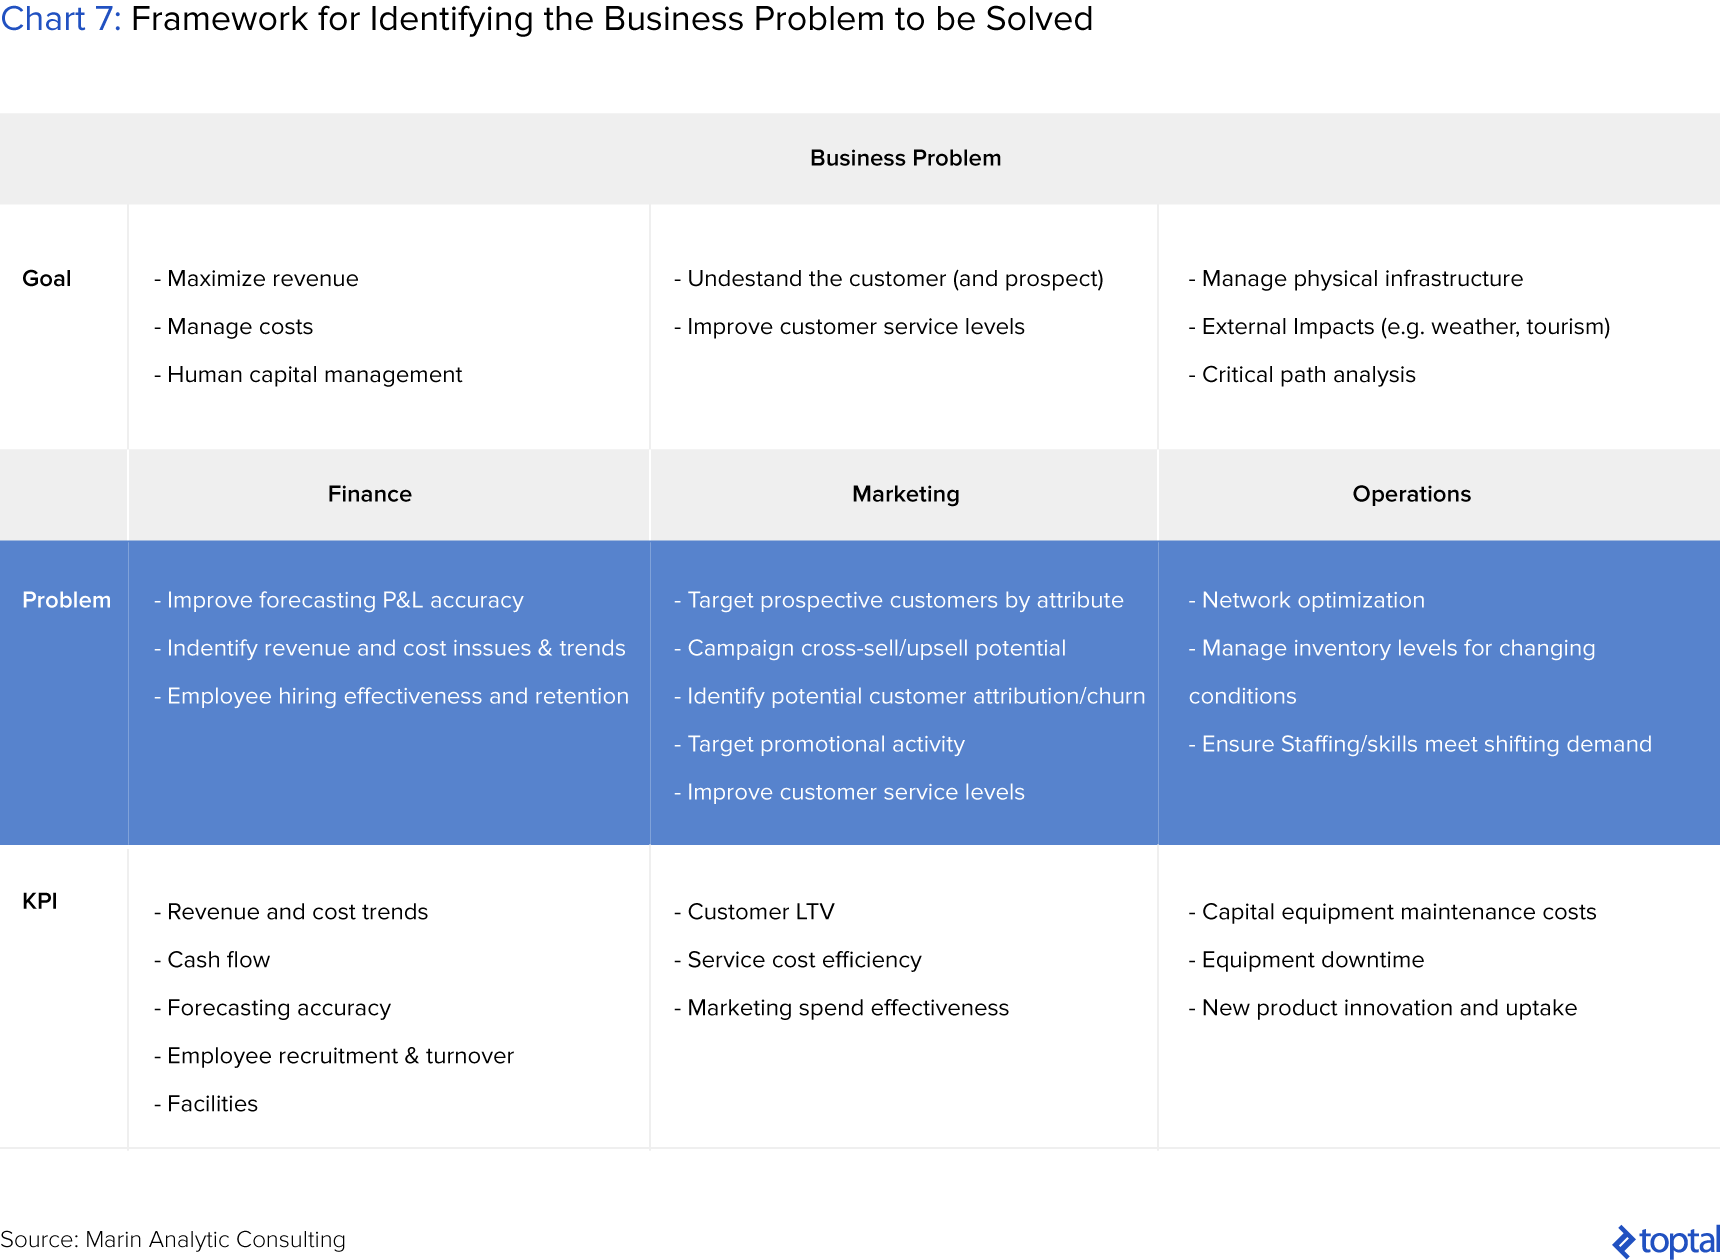 Chart 7: Framework for Identifying the Business Problem to be Solved